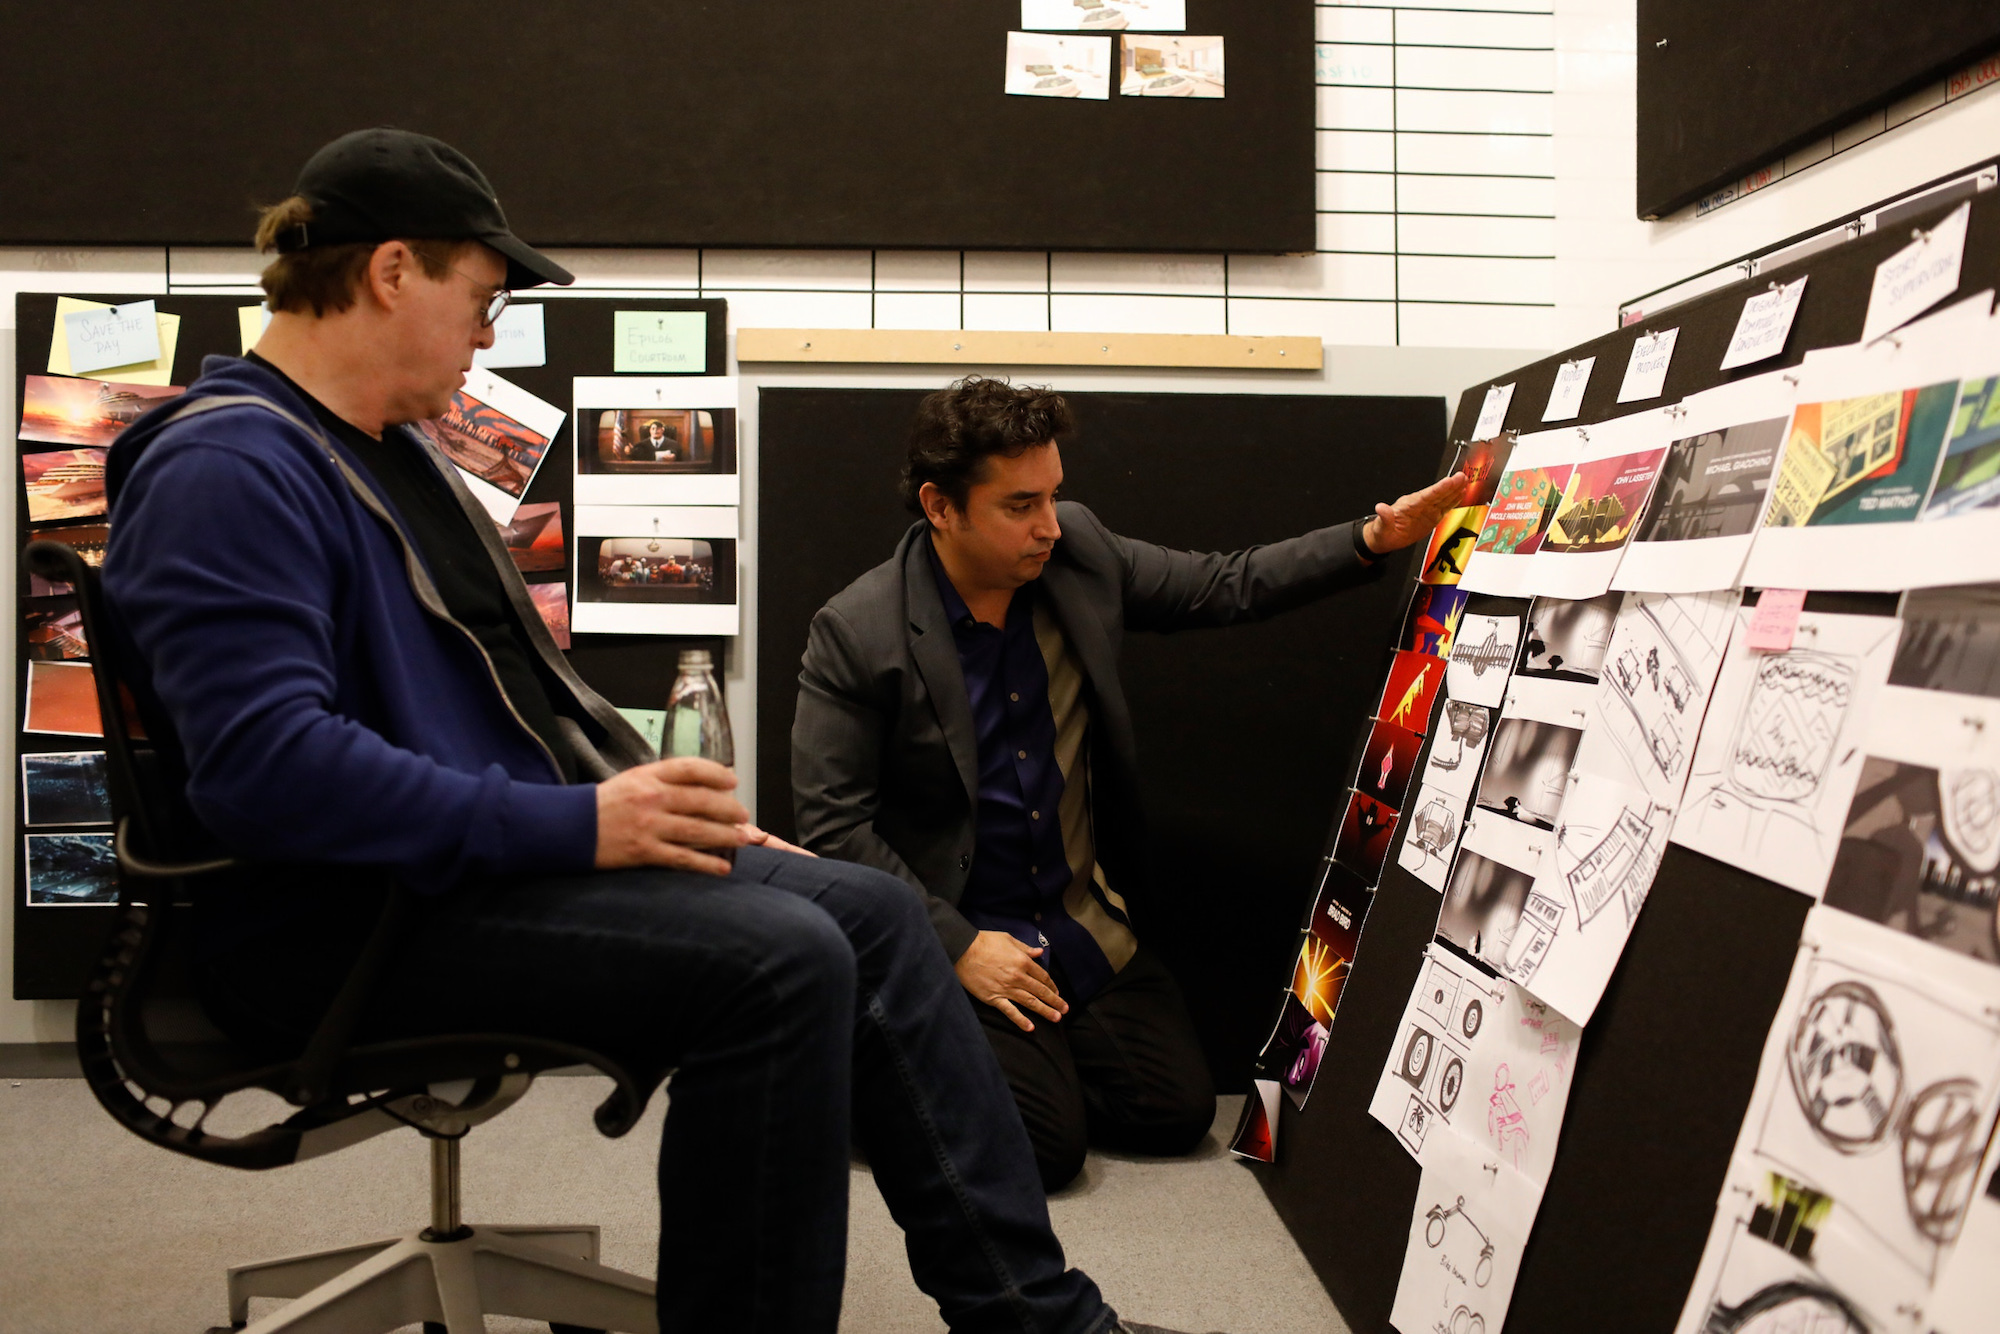 Andrew Jimenez with Brad Bird